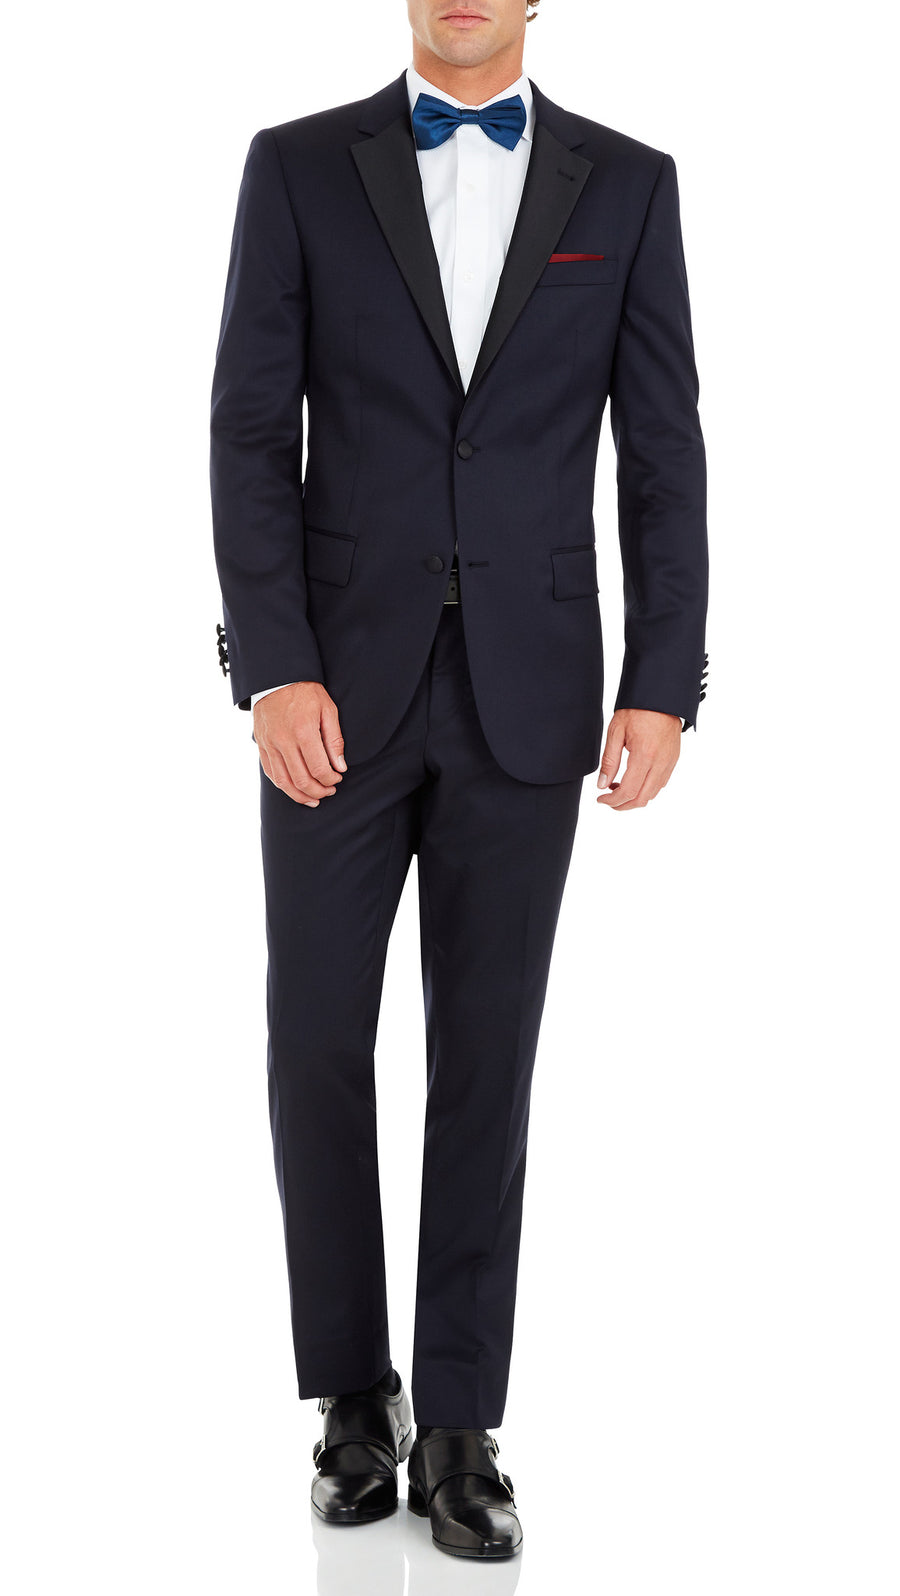 Bennett Signature Navy Dinner Suit - Ron Bennett Menswear  - 2